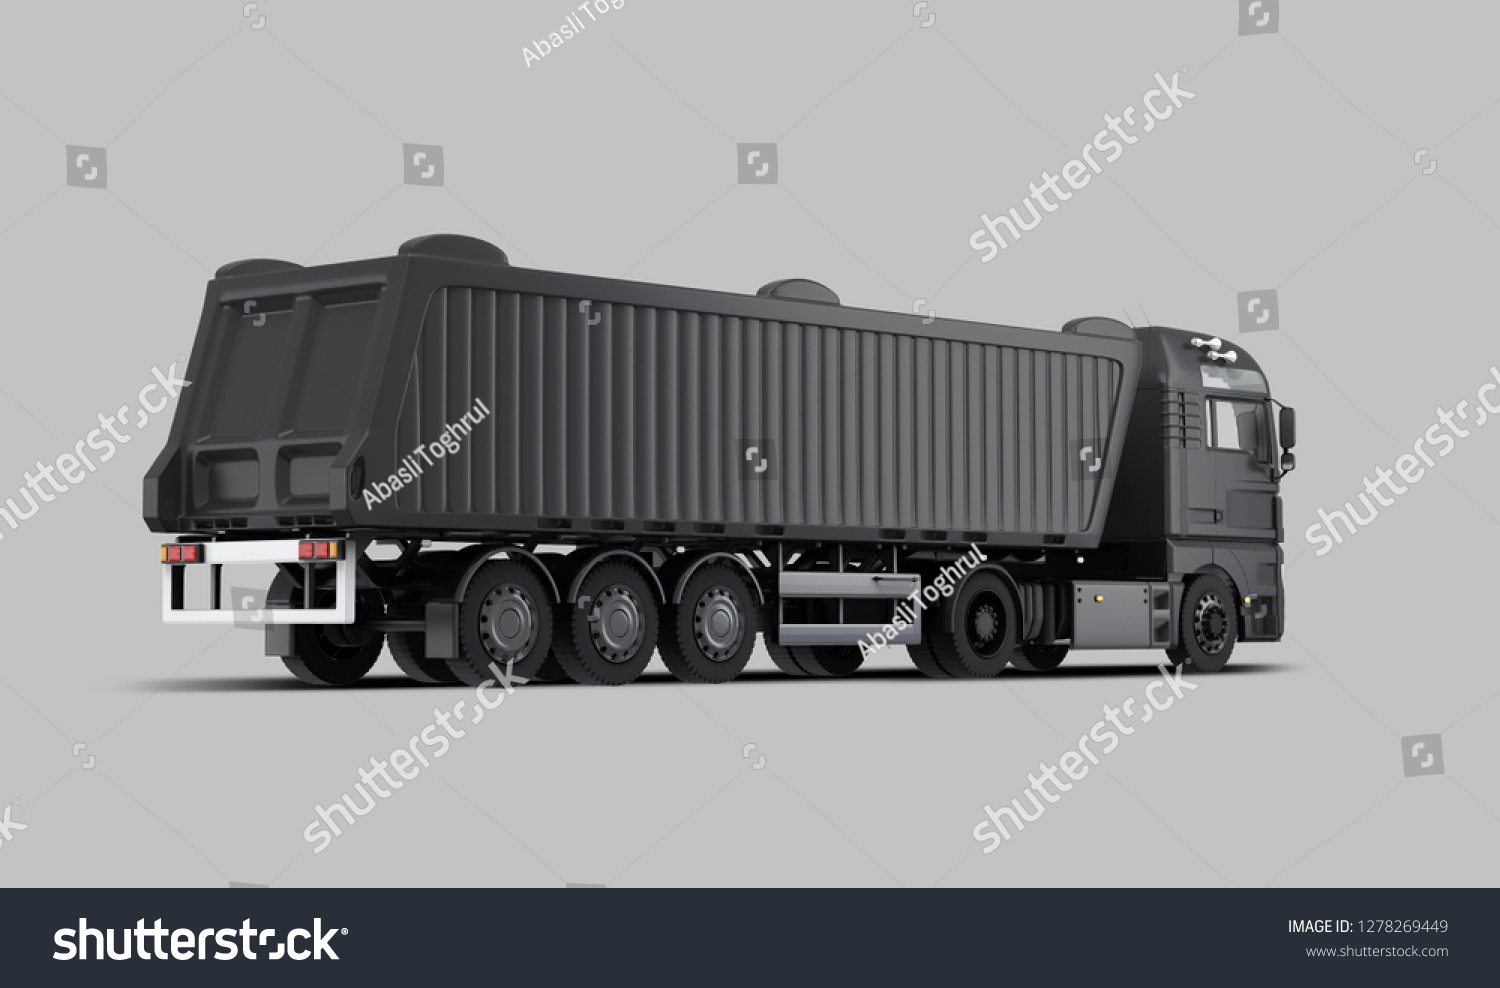 Black dump truck back view 3d rendering